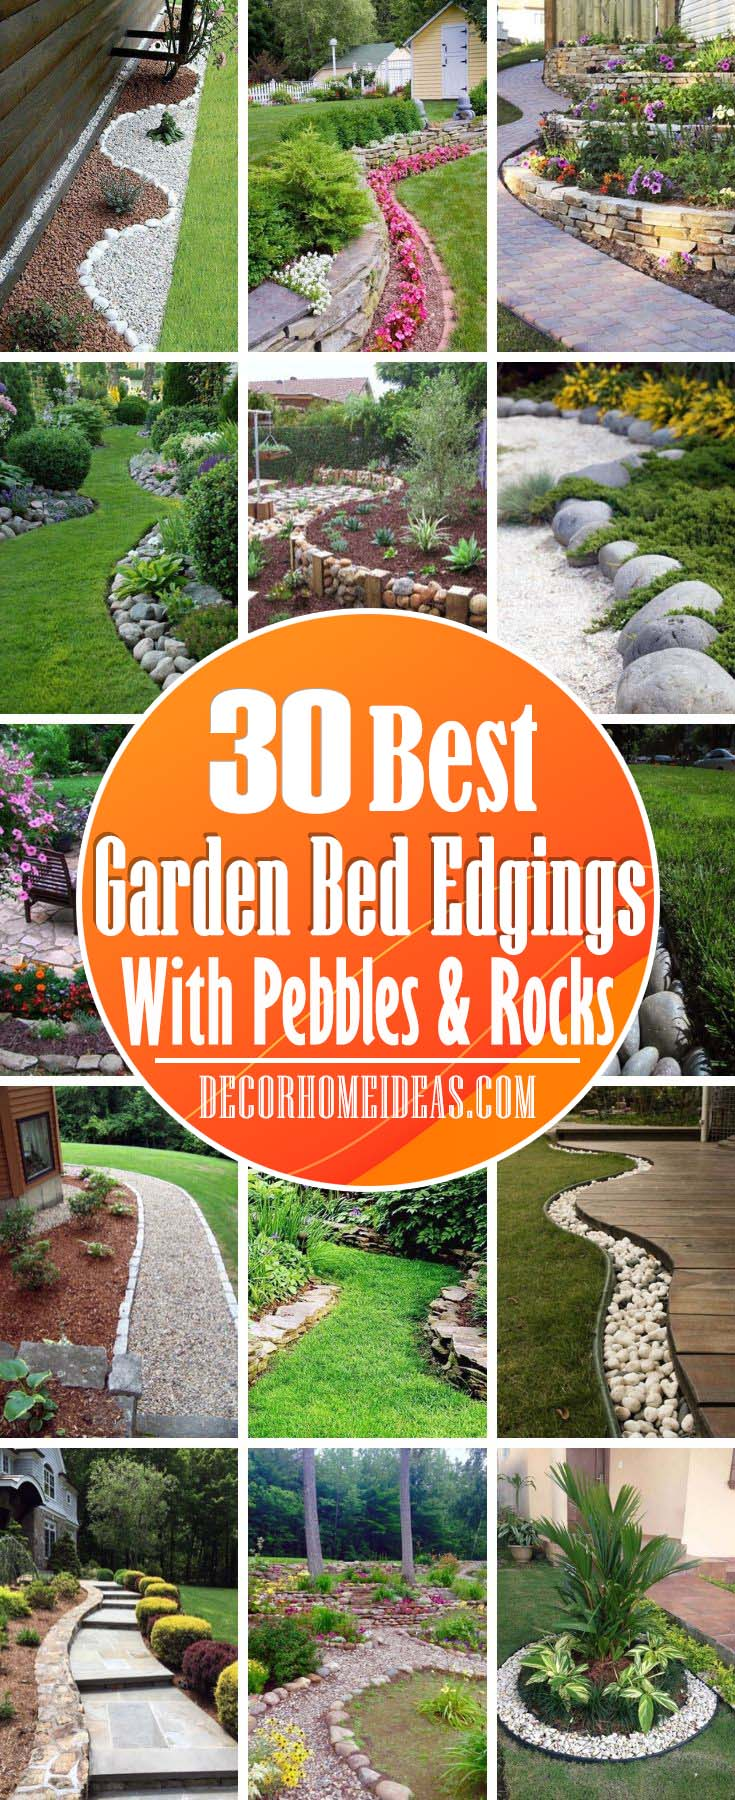 Garden Bed Edgings With Rocks And Pebbles. Creative ways to build a garden bed edging with stones, rocks and pebbles. Great for small garden, front yard or backyard. #garden #bed #edging #rocks #stones #pebbles #decorhomeideas